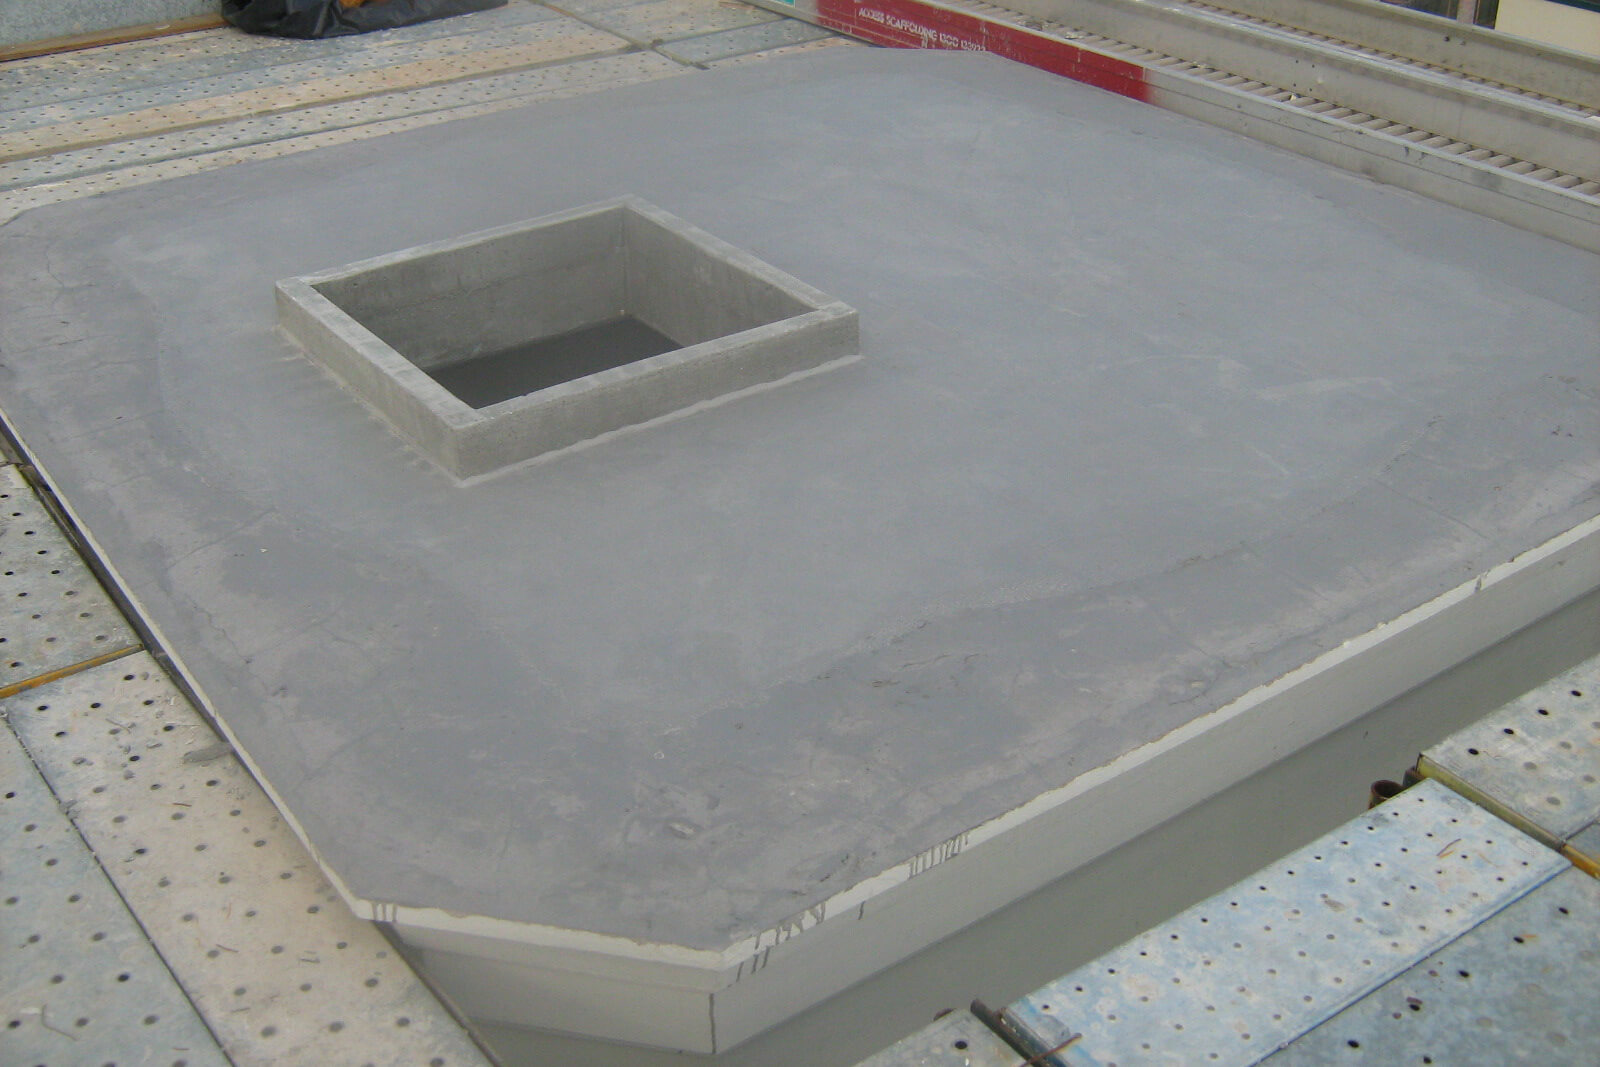 New Slab For Dome Of St Lukes Church Buranda - Flooring Solutions - Remedial Building Services